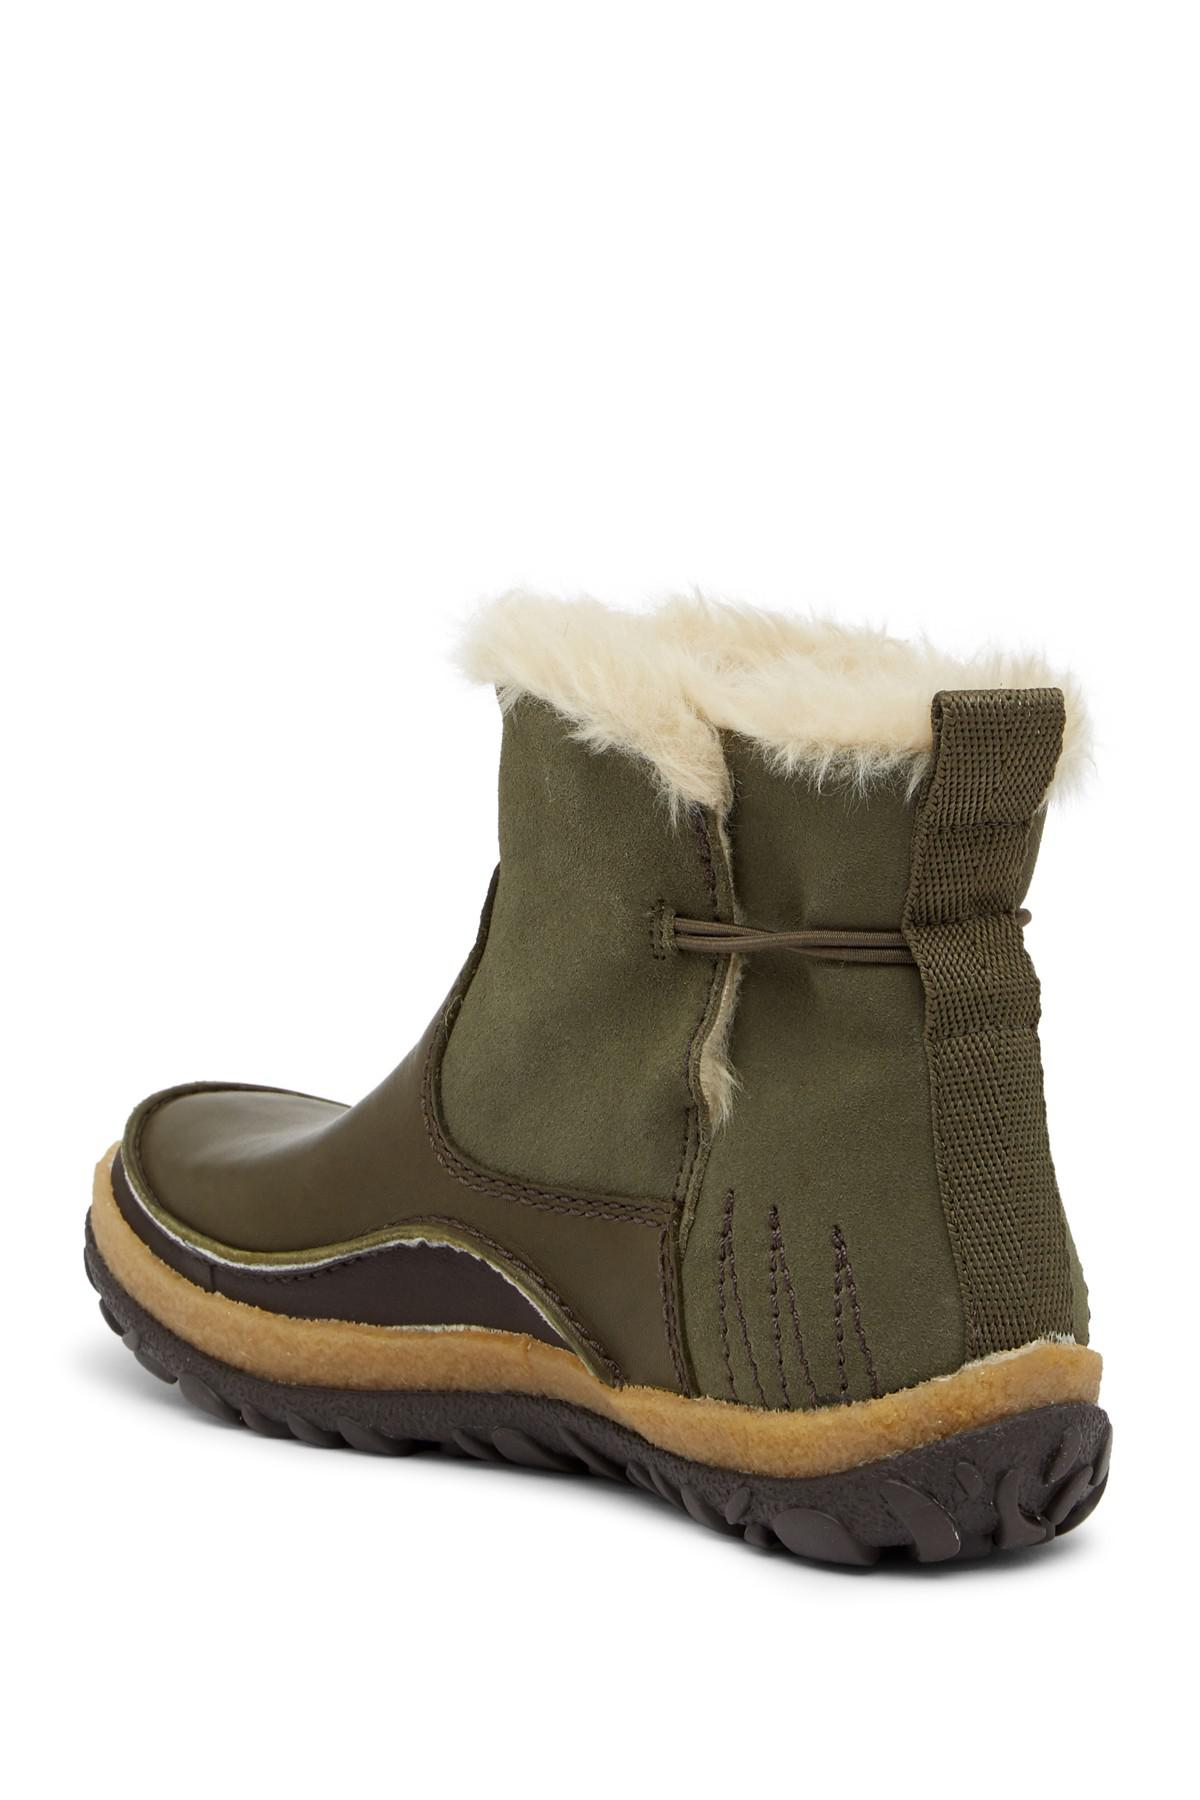 Merrell Tremblant Faux Fur Trimmed Pull-On Waterproof Boot zmxMSK2